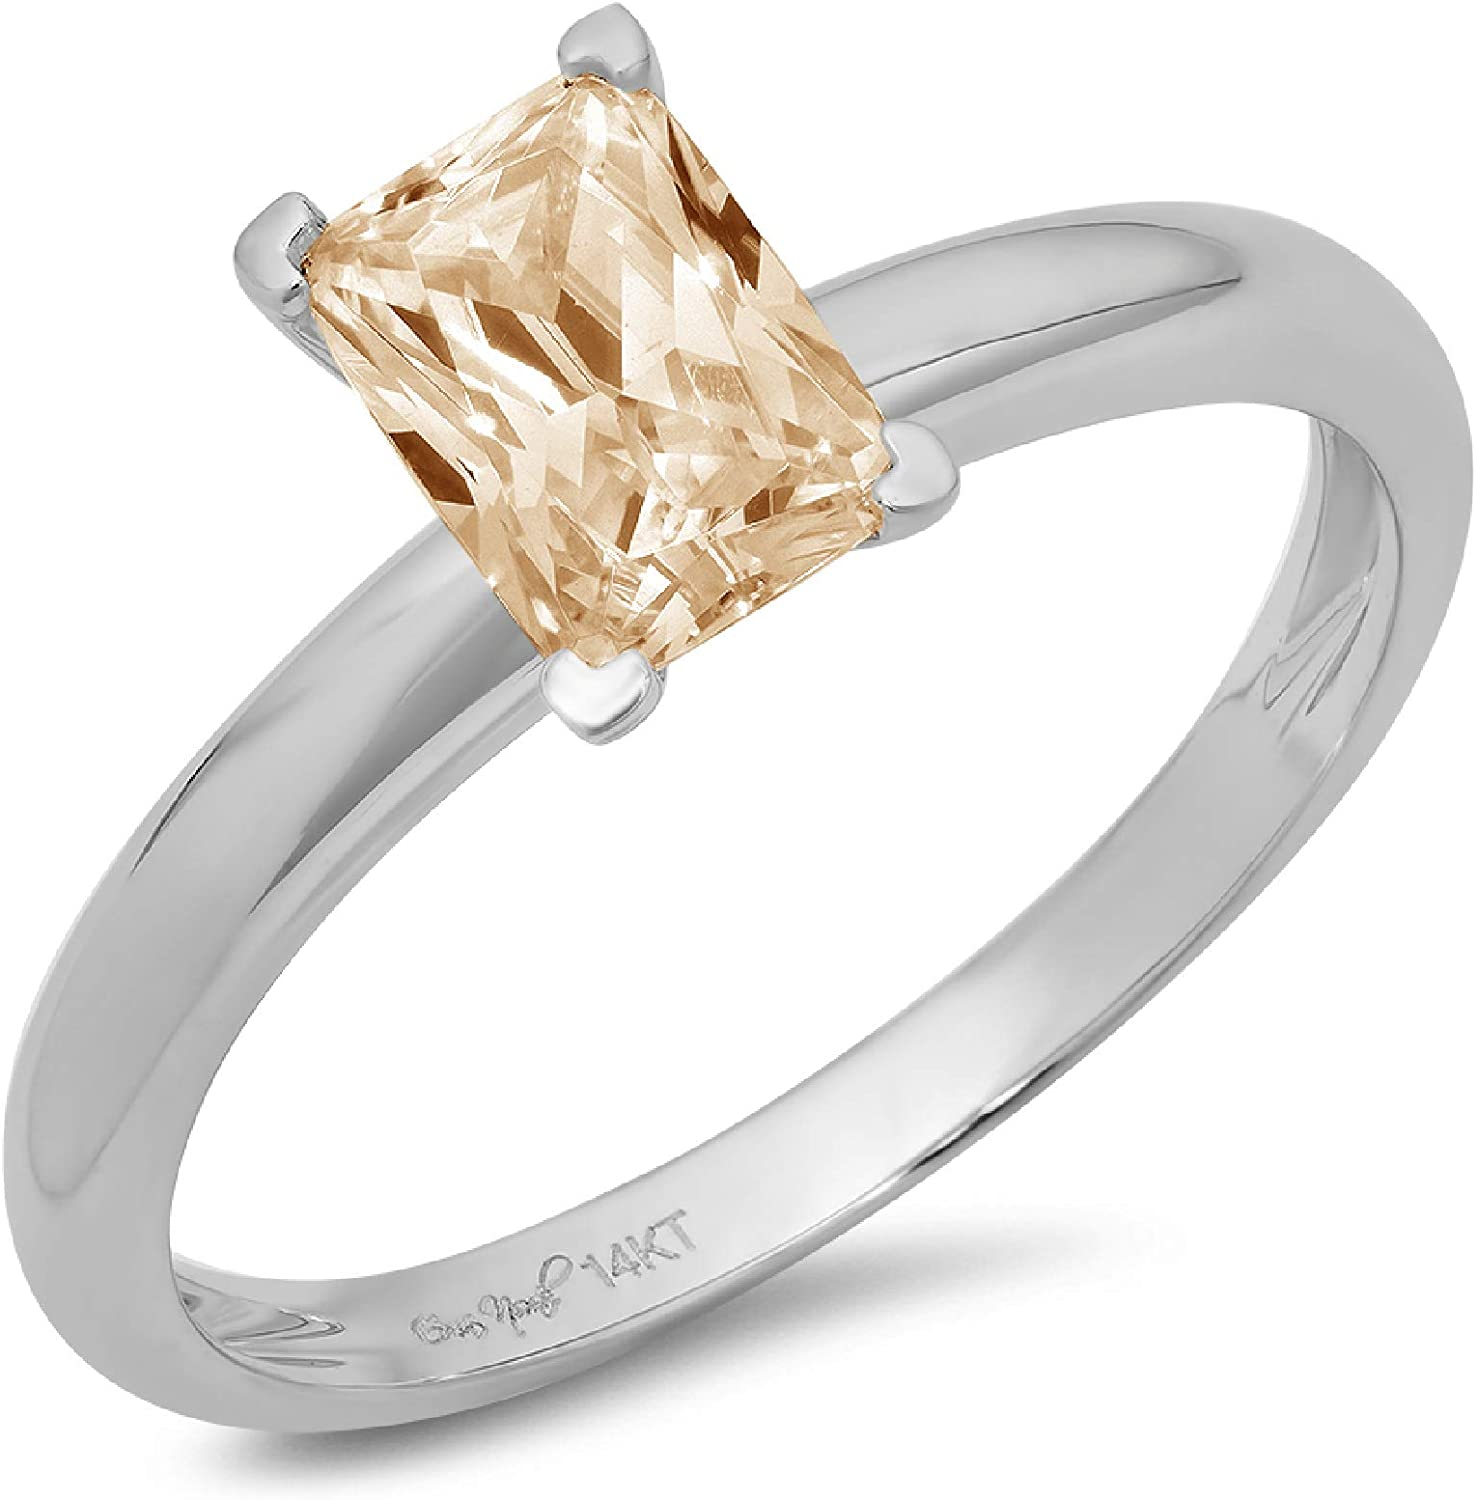 0.9ct Brilliant Emerald Cut Solitaire Designer Genuine Natural Morganite Ideal VVS1 4-Prong Engagement Wedding Bridal Promise Anniversary Ring Solid 14k White Gold for Women